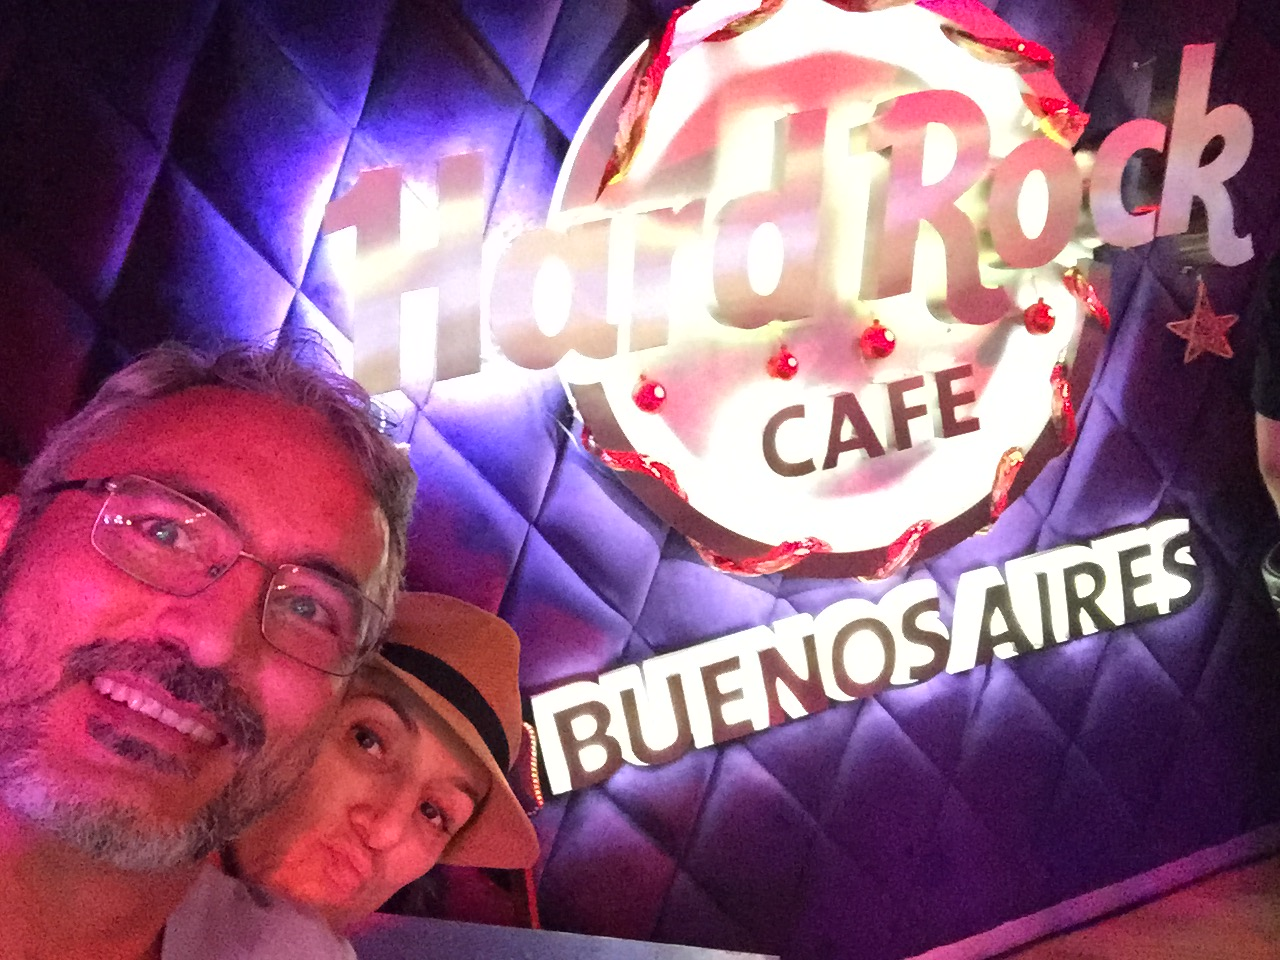 De moto no Hard Rock Café - 2016/2017